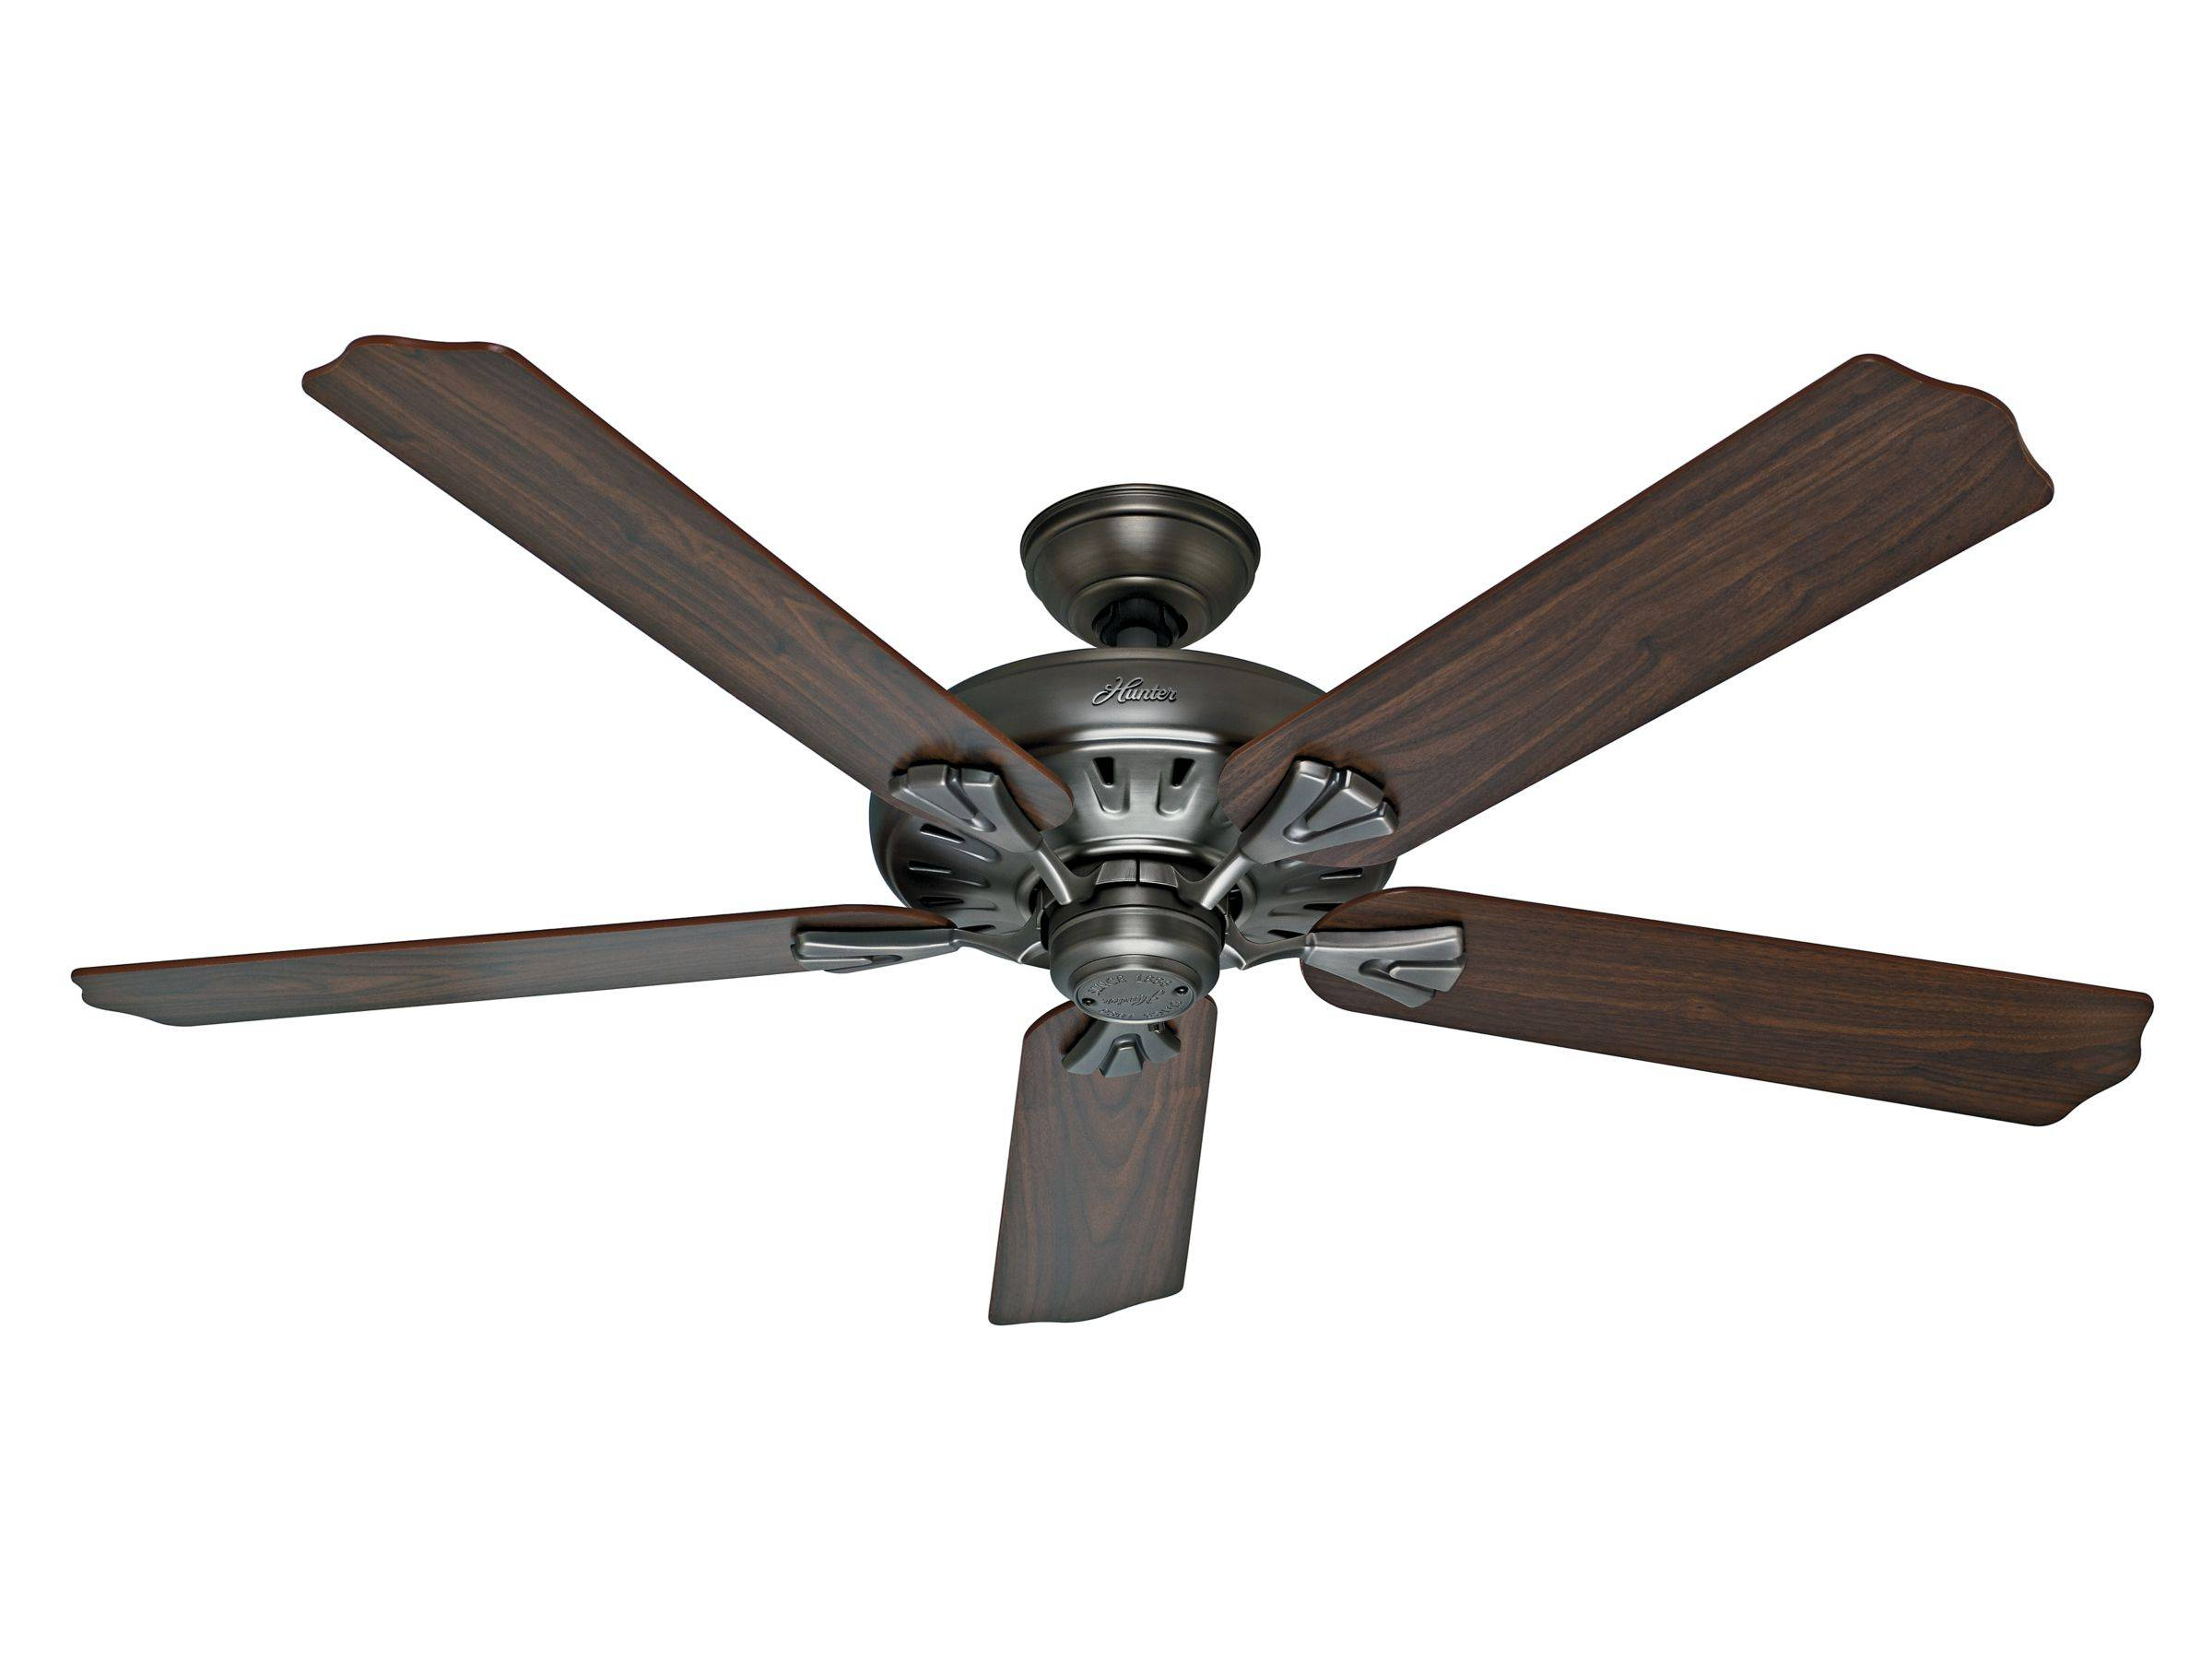 Oak Ceiling Fans With Lights : Mossy oak ceiling fan enhance the aesthetic appeal of